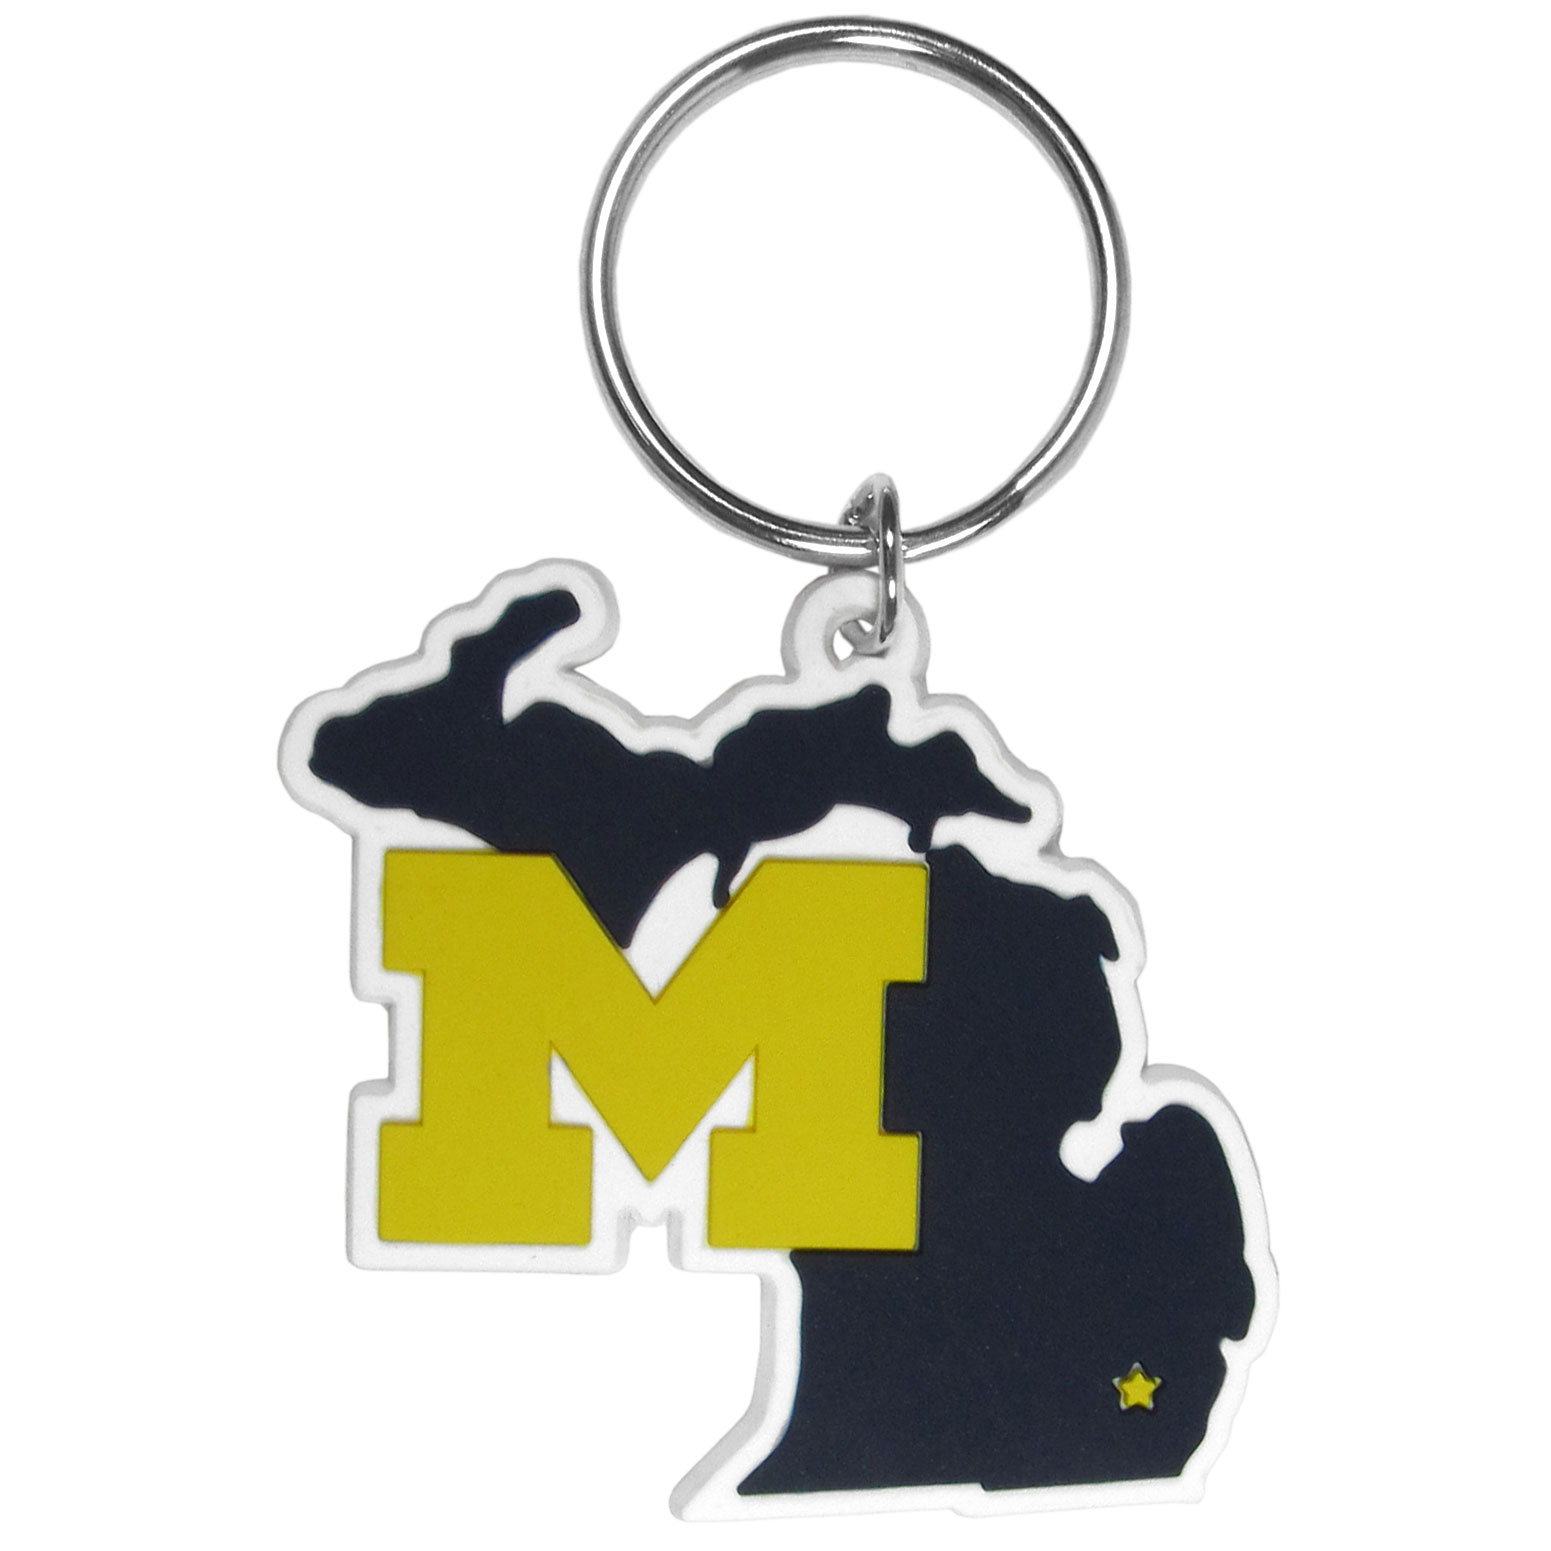 Michigan Wolverines Home State Flexi Key Chain - Our flexible Michigan Wolverines key chains are a fun way to carry your team with you. The pliable rubber material is extremely durable and is the layered colors add a great 3D look to the key chain. This is really where quality and a great price meet to create a true fan favorite.